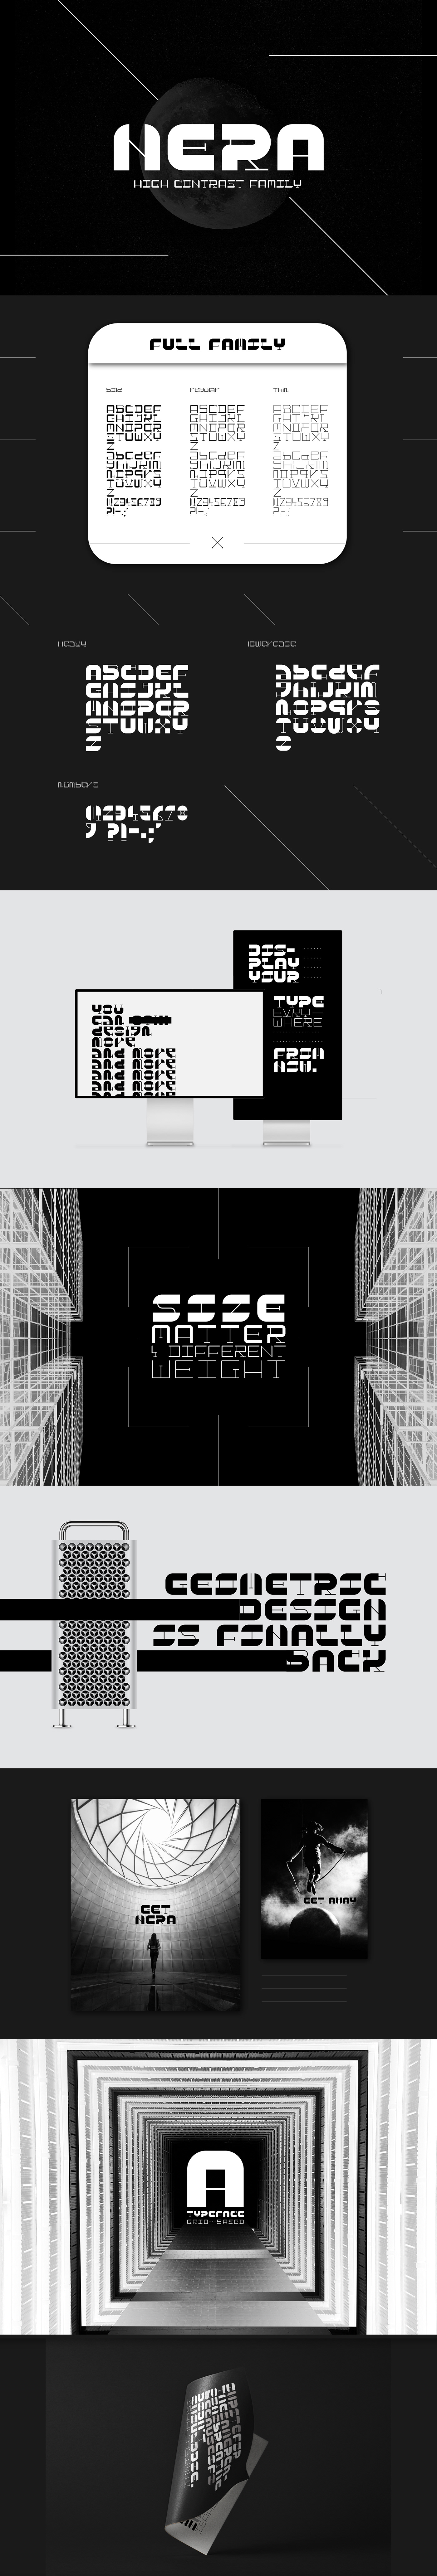 Free Nera Display Font is a unique and geometric high contrast display typeface by Daniele Franchi.